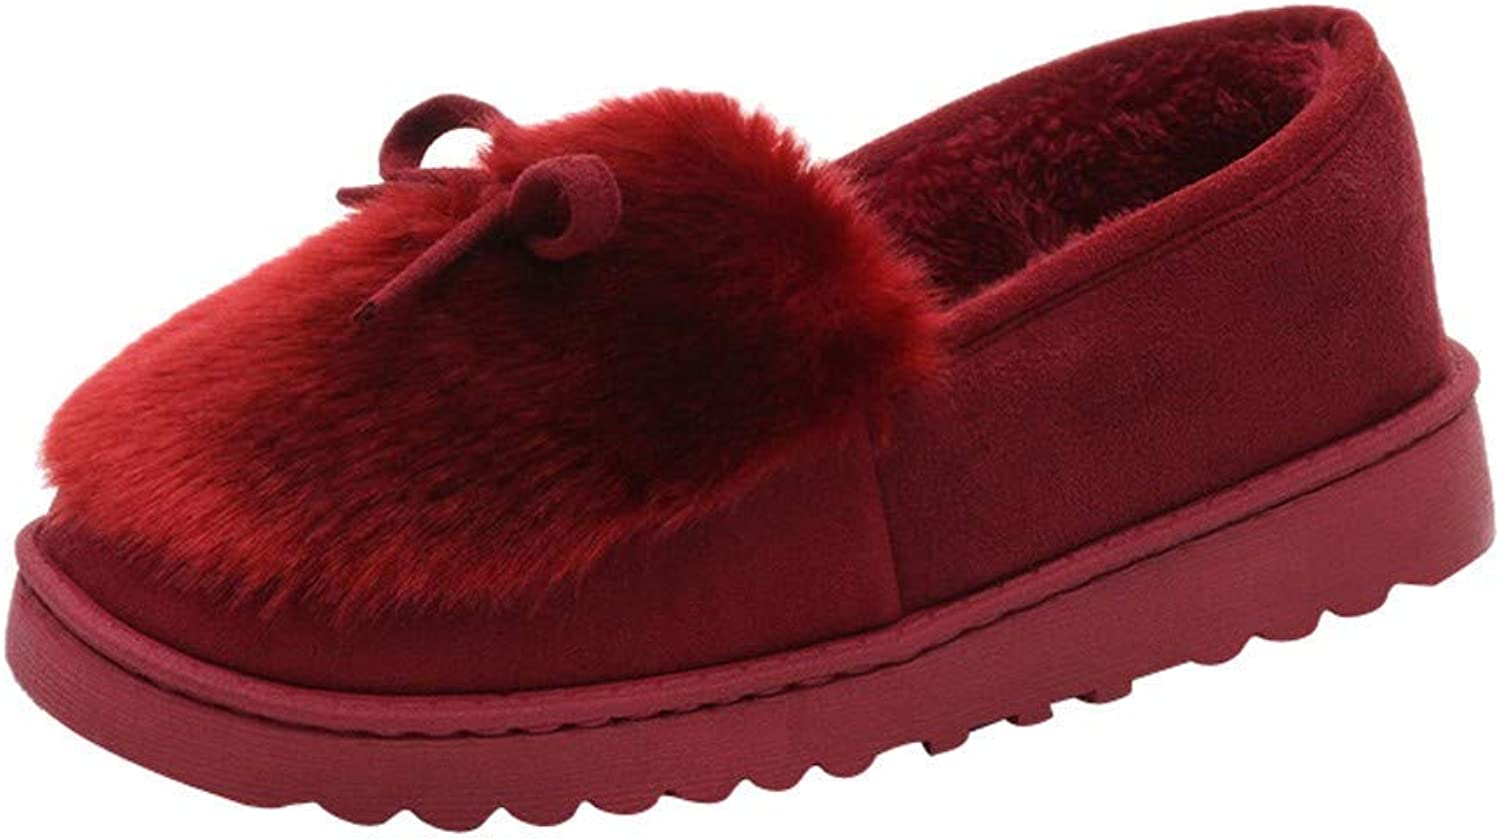 Fuxitoggo Frauen Casual Slip-On Bogen Low Cut Loafer Loafer Loafer Schuhe Stiefel Flache Form Schuhe Mode Plus Samt Schnee Stiefel (Farbe   Wine)  620efd